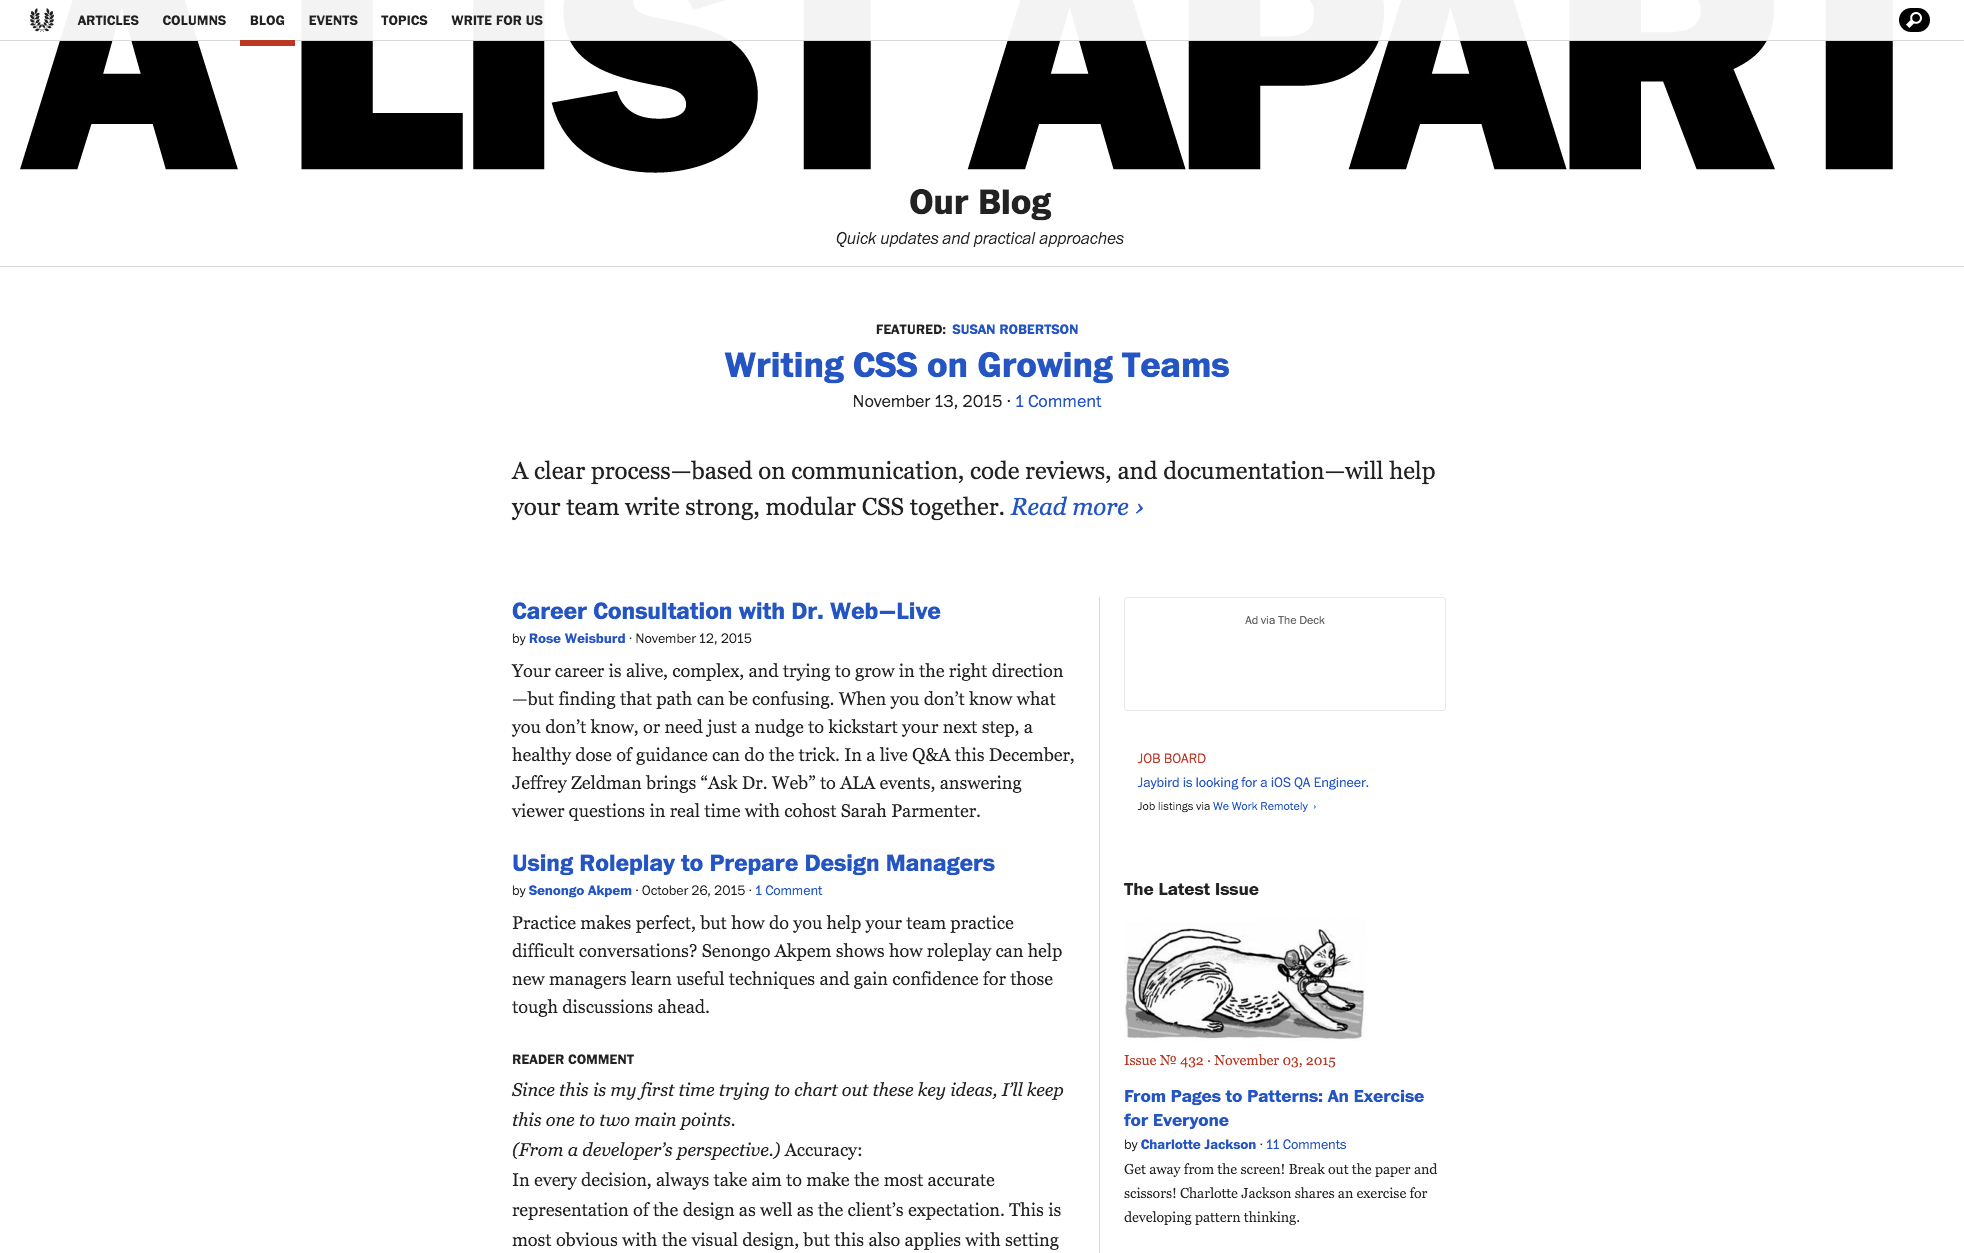 A List Apart's blog index page